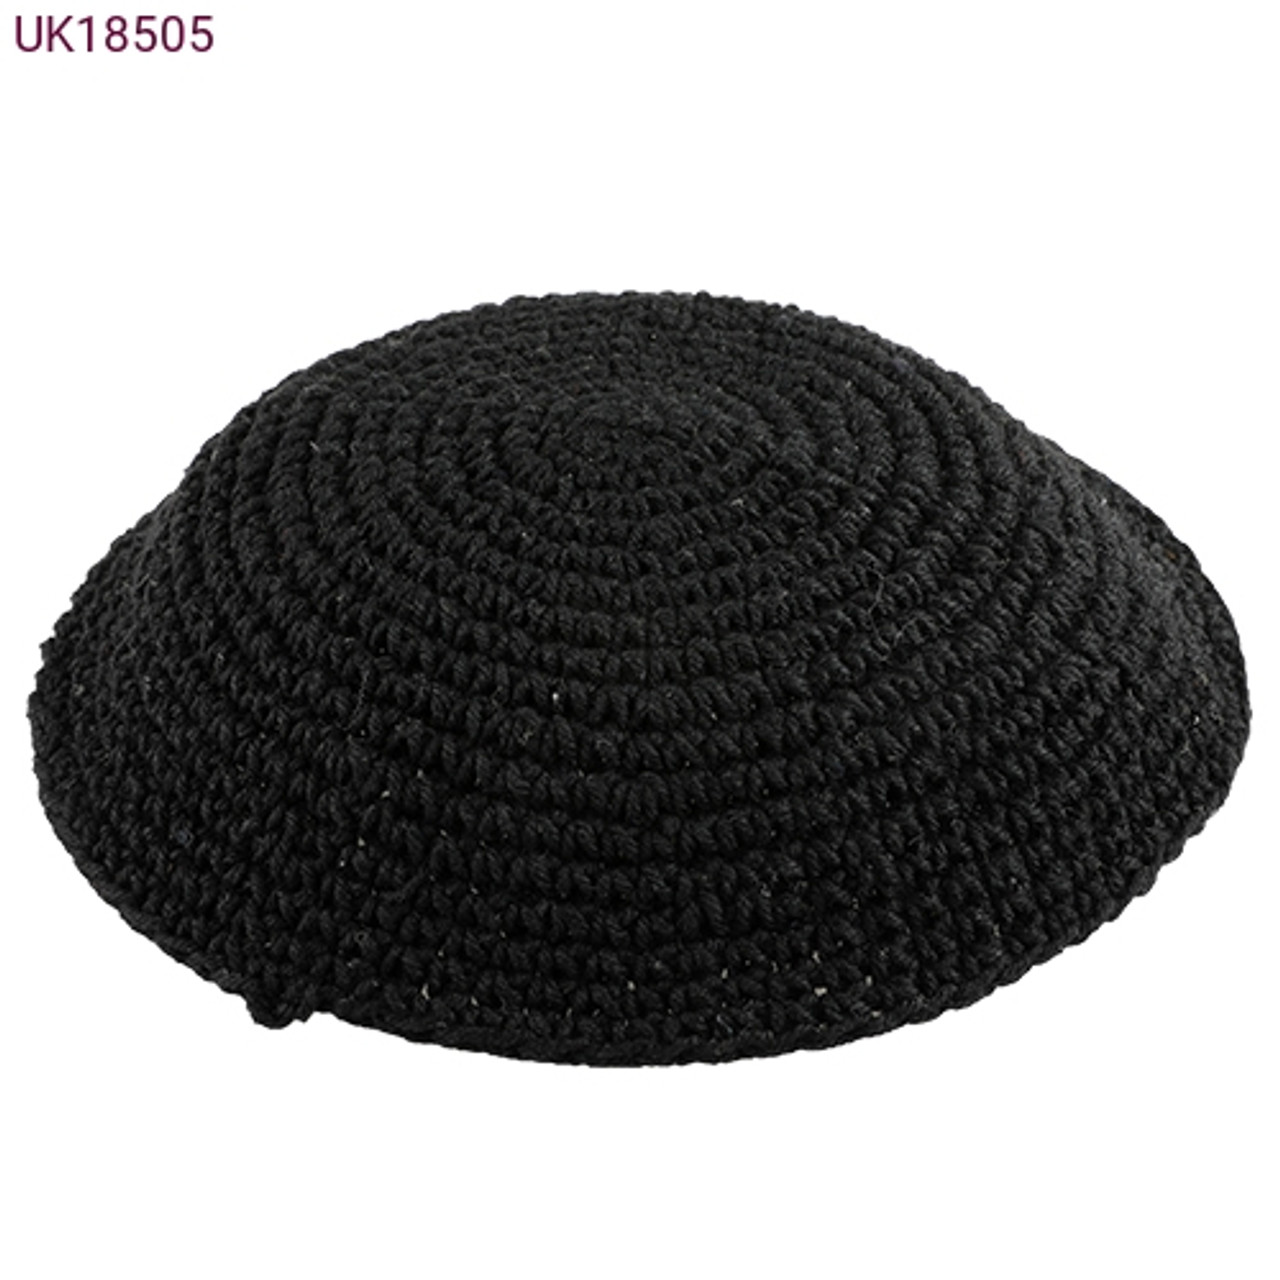 Large Black Knitted Kippah